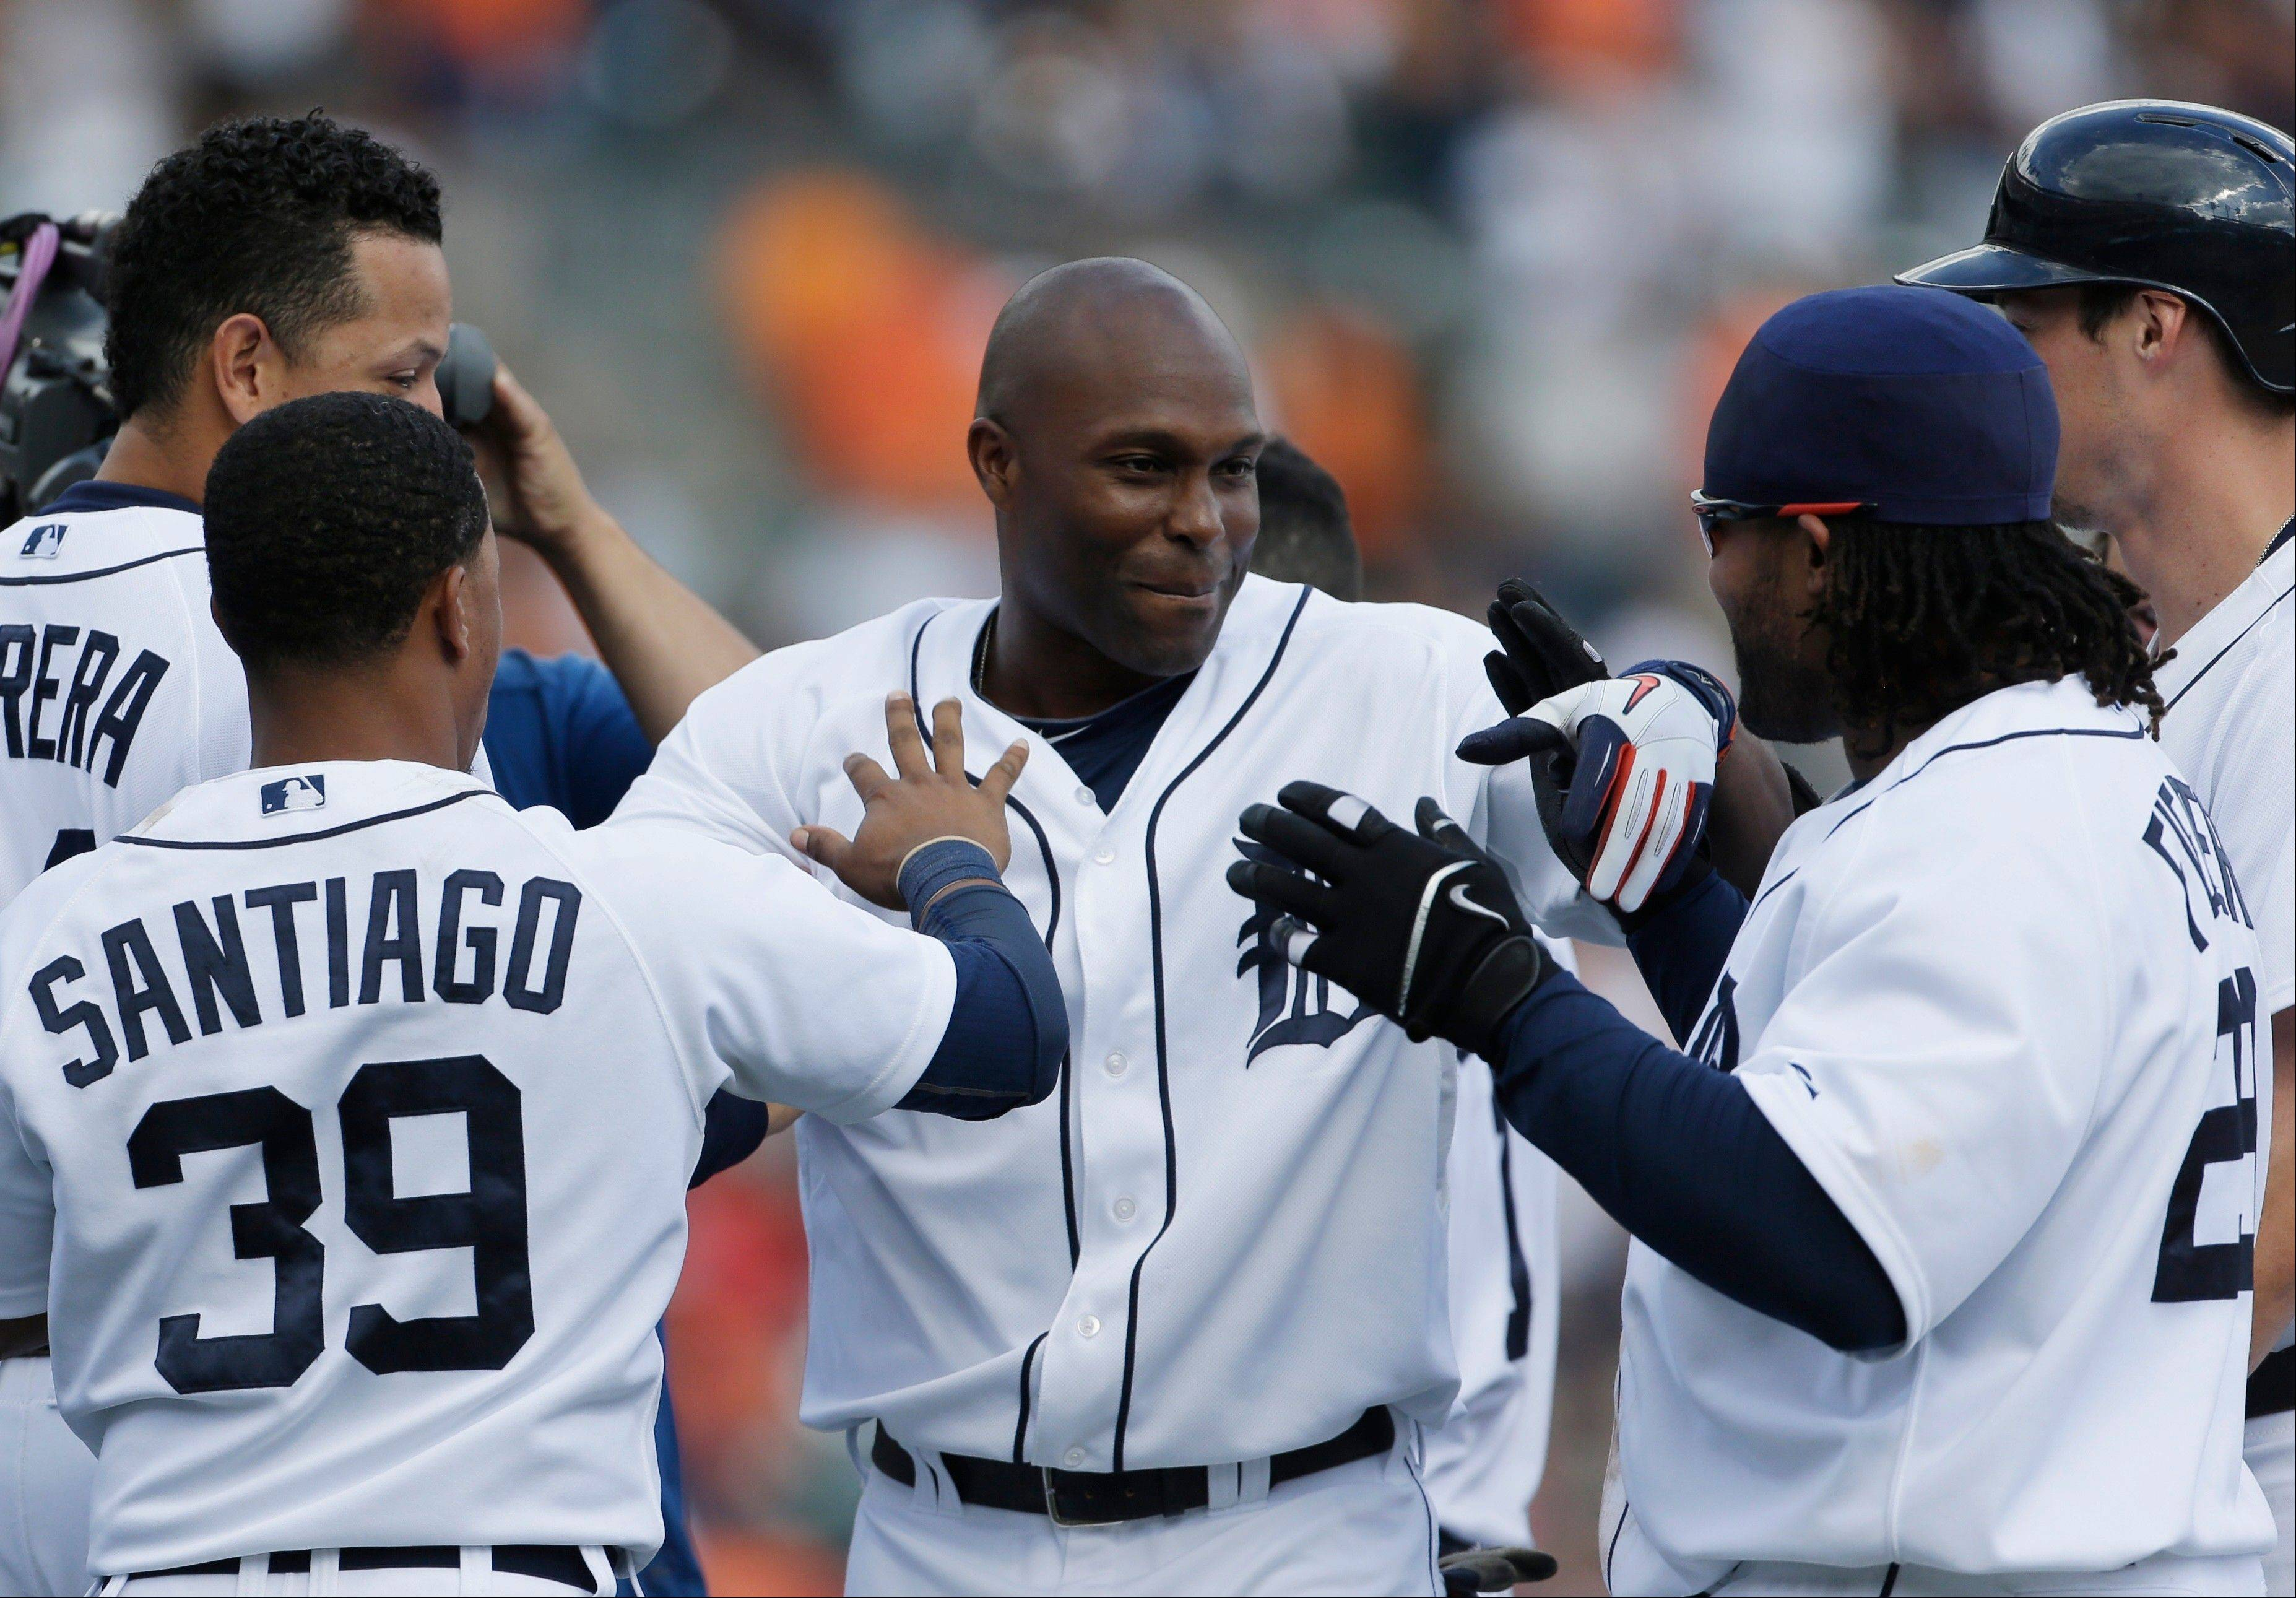 The Tigers' Torii Hunter is mobbed after hitting the game-winning single in the 12th inning Sunday at home against the Chicago White Sox.